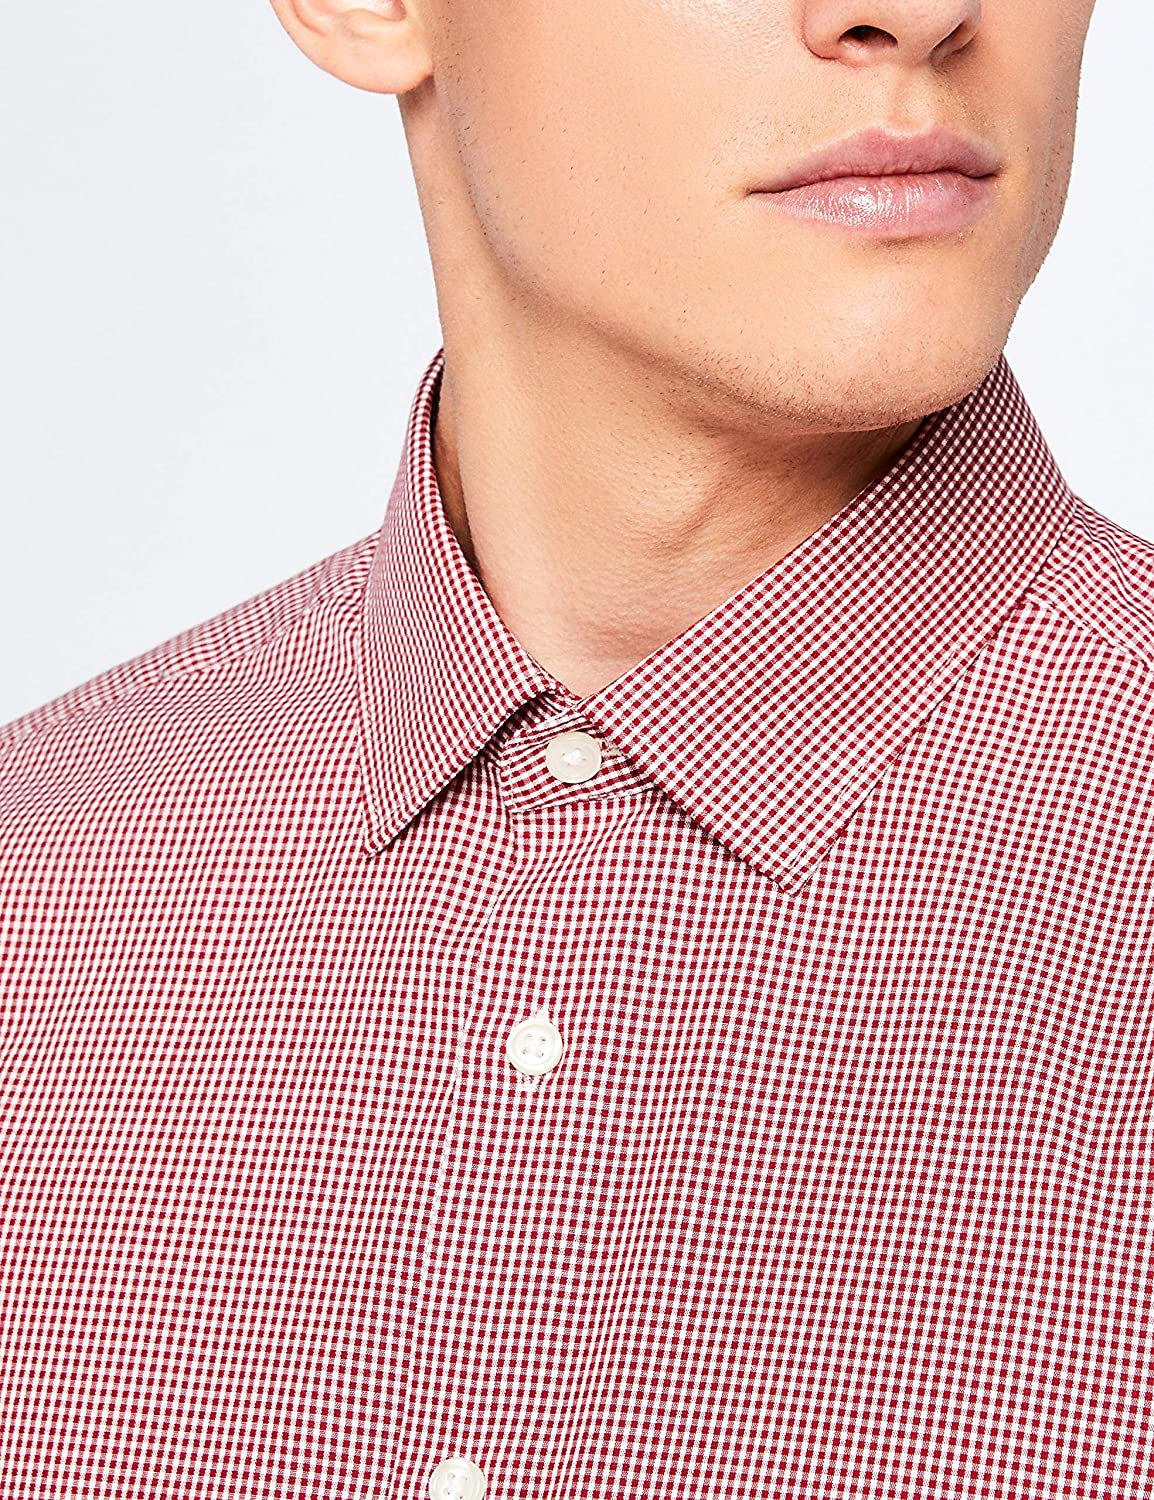 XXL Camicia formale , Gingham Red Uomo Marchio Rosso Hem /& Seam Slim Fit Gingham Label: XXL